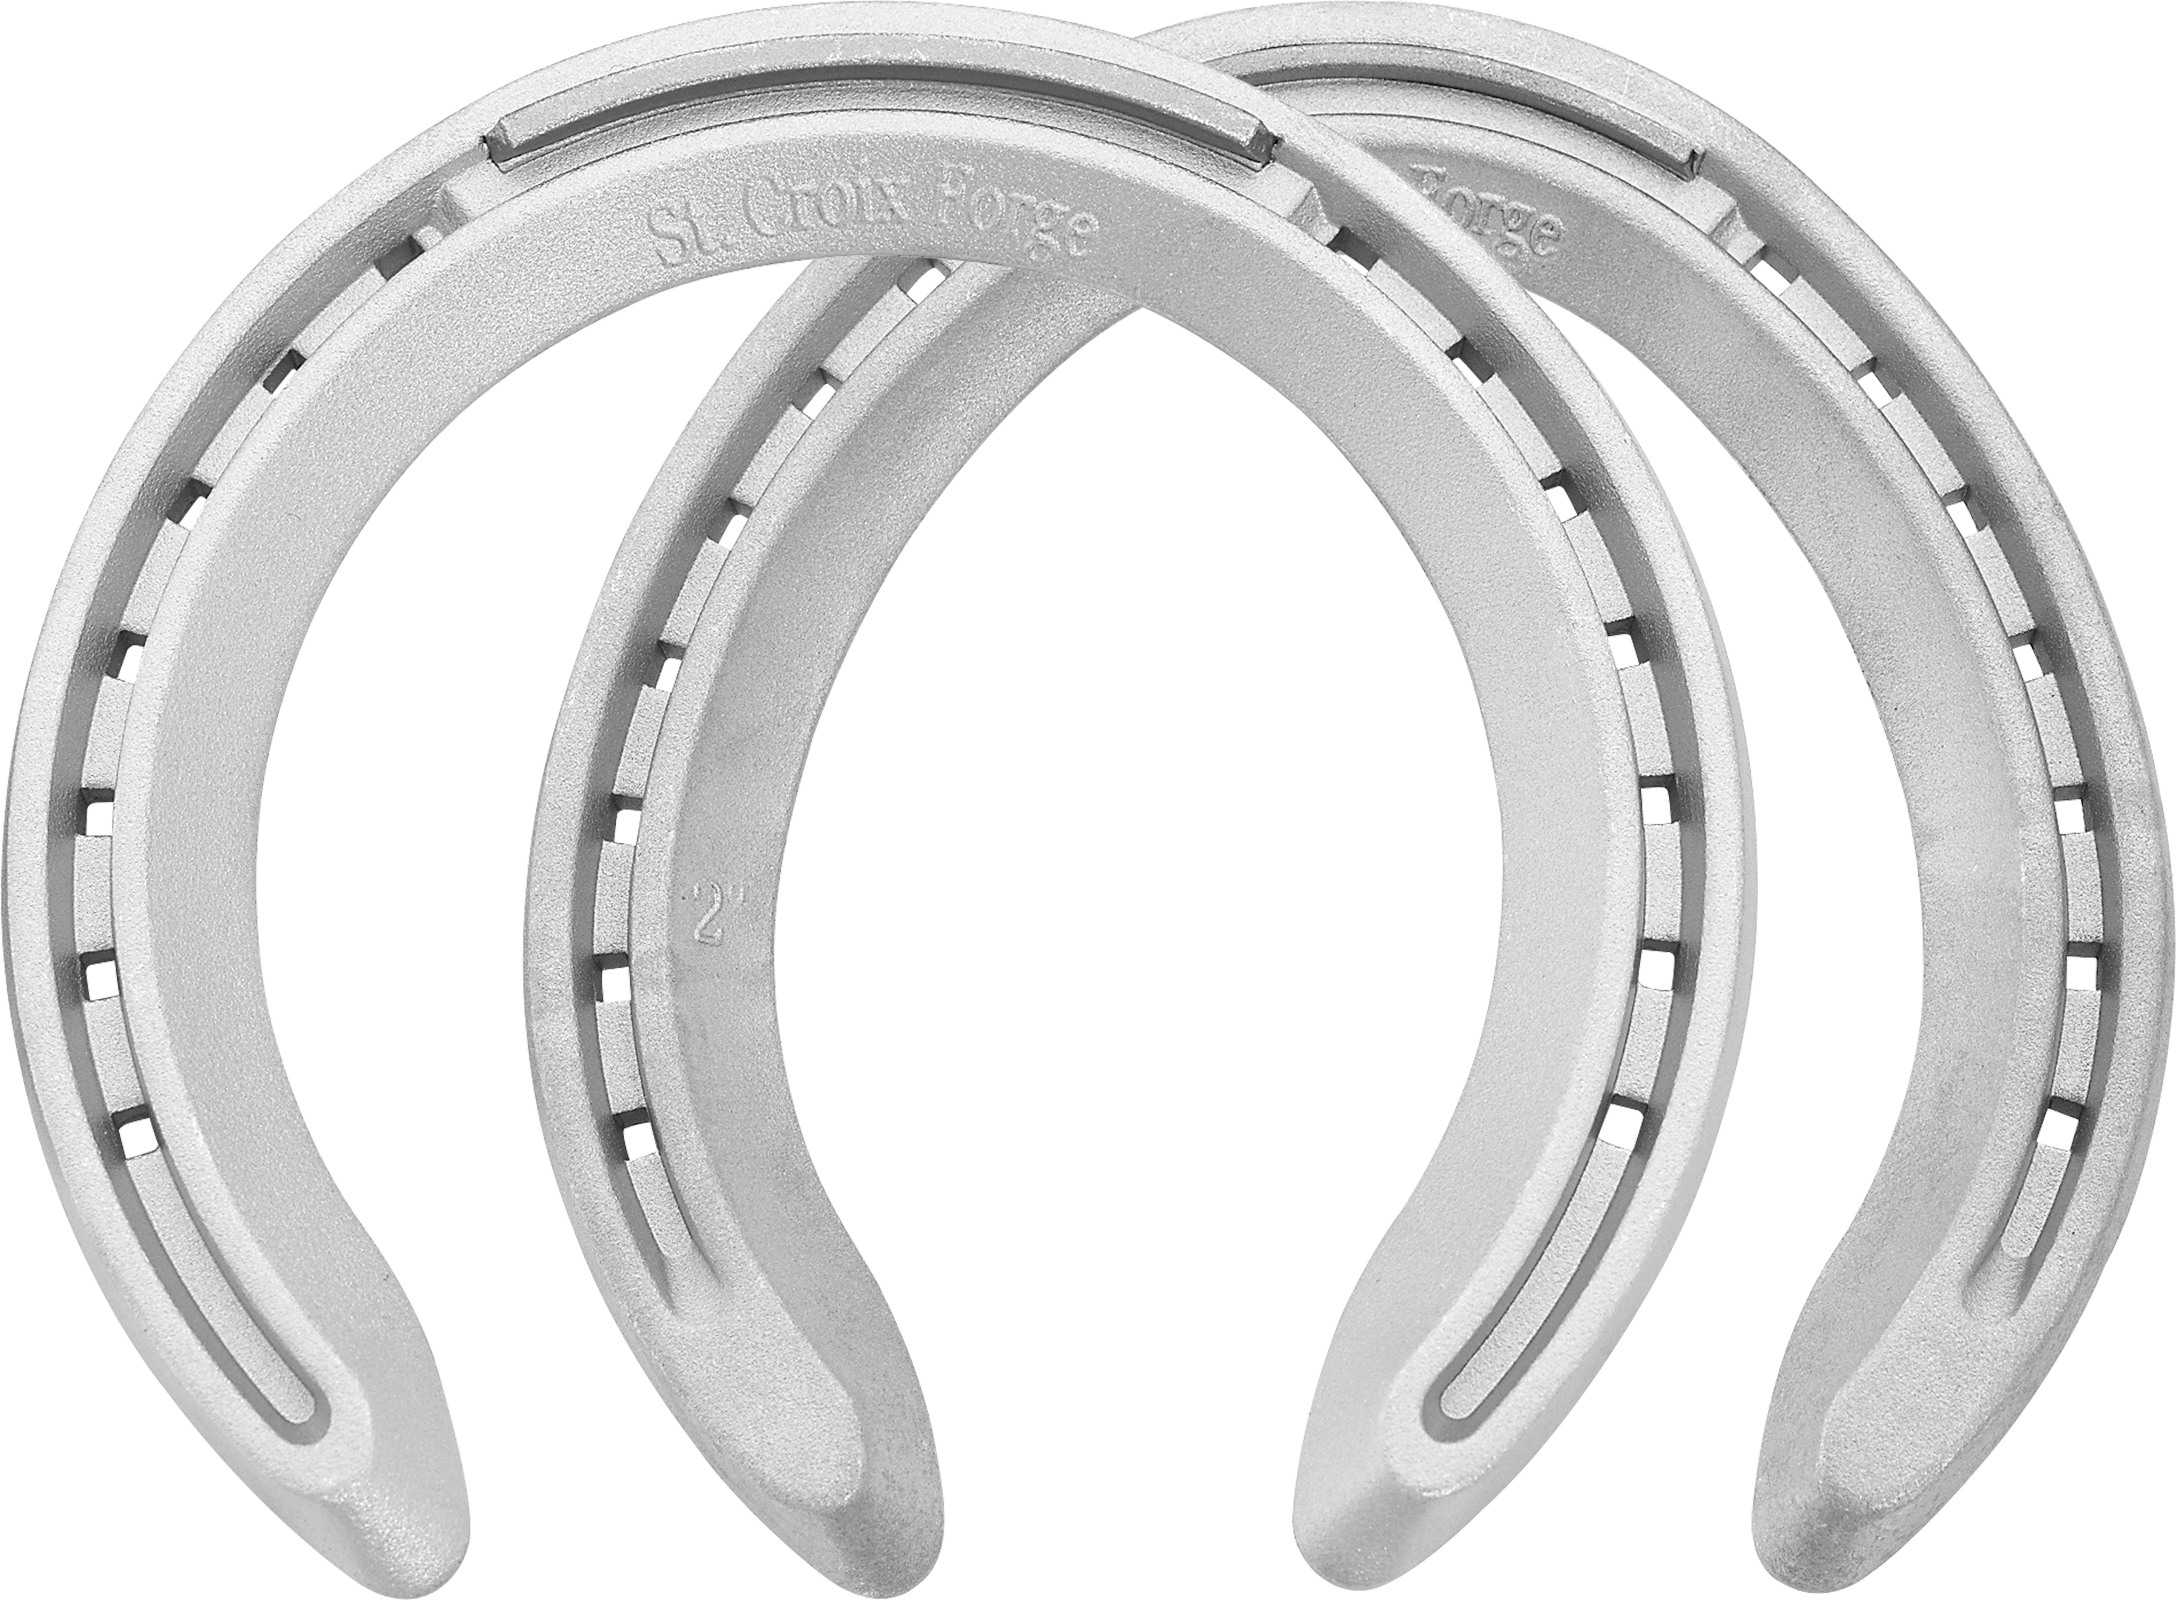 St. Croix Concorde XLT horseshoes, front and hind, bottom view